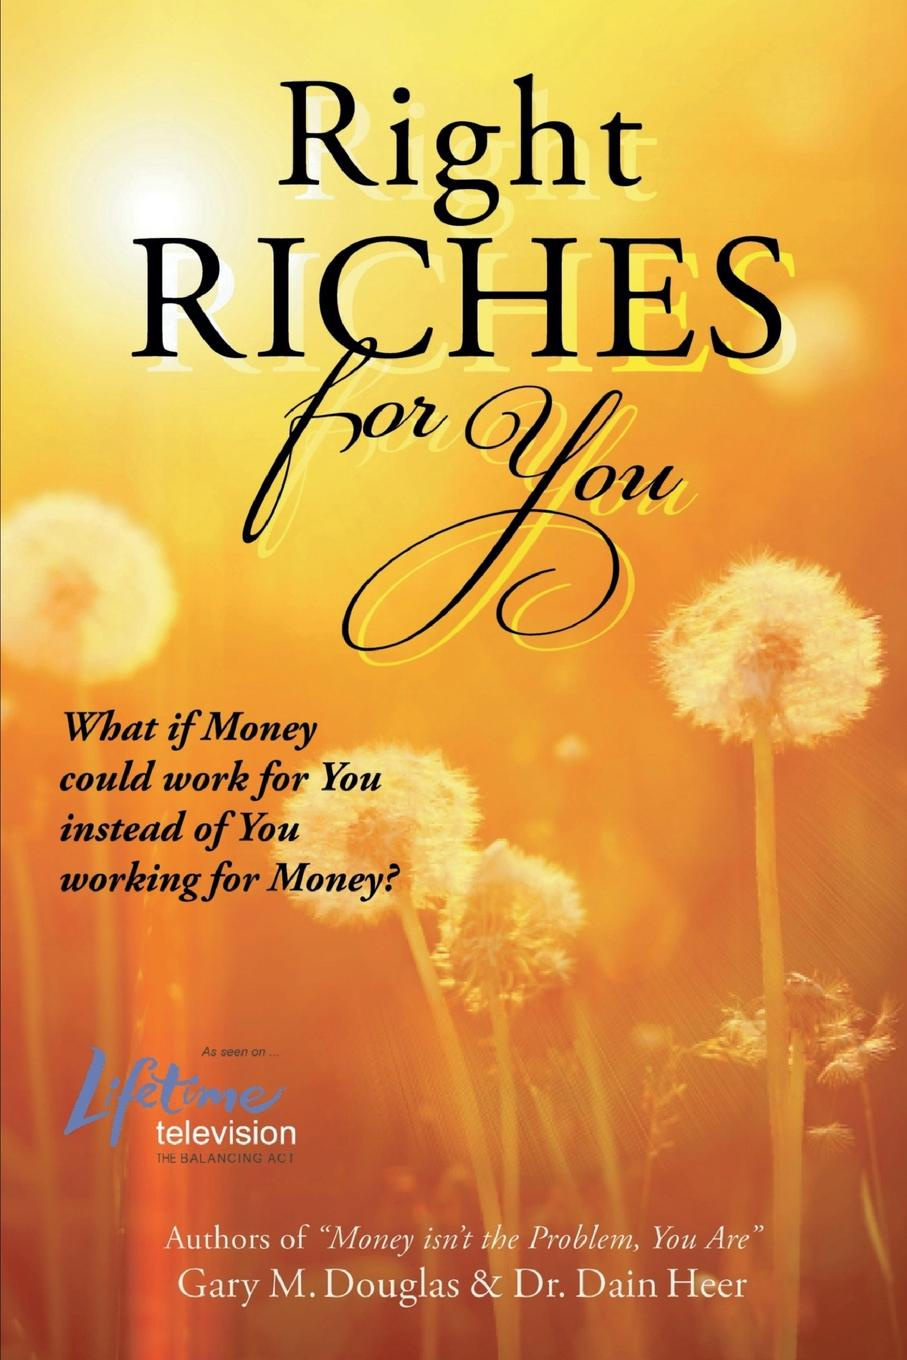 Dr. Dain Heer, Gary M. Douglas Right Riches for You dr dain heer gary m douglas right riches for you